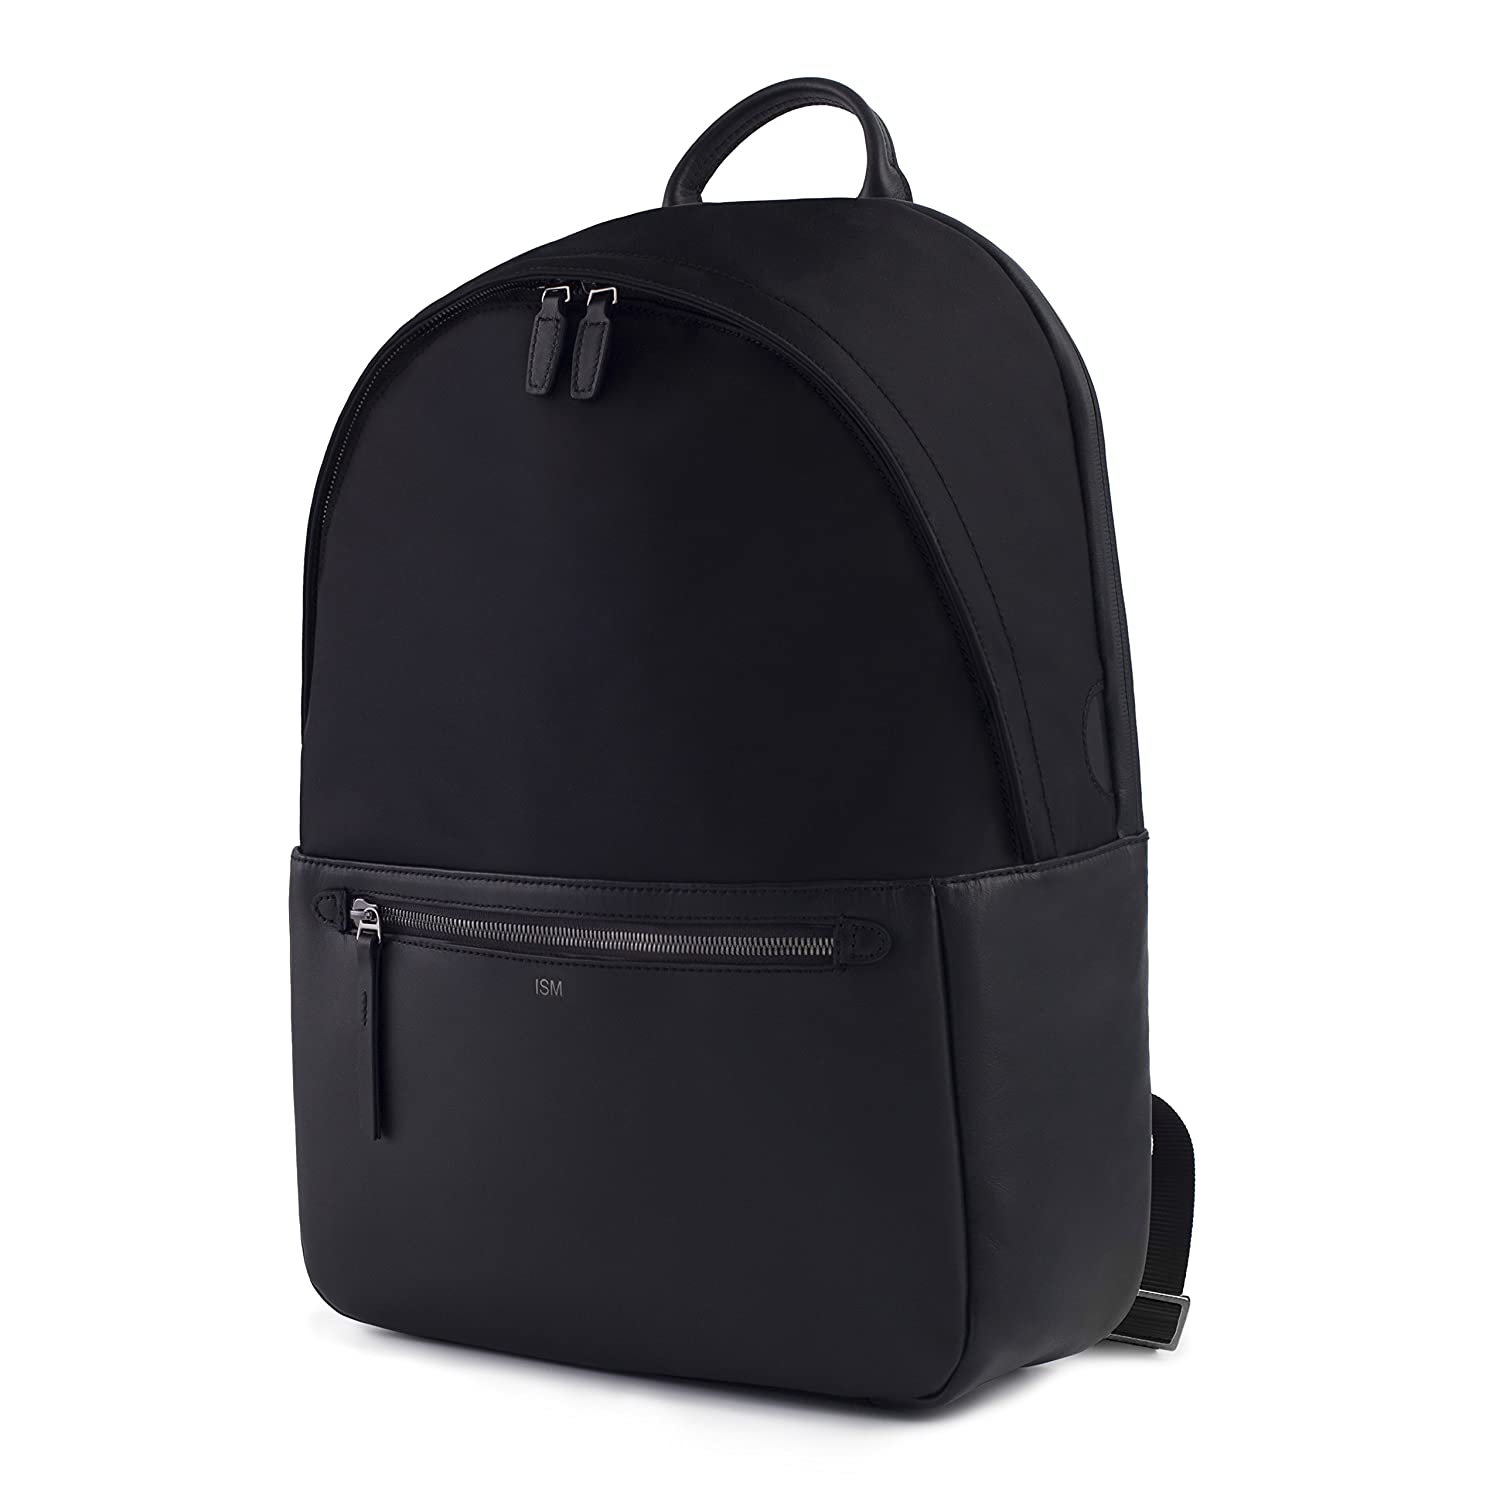 ISM The Backpack Black Leather Laptop Backpack Work Backpack Black Leather Backpack 15inch Laptop Backpack